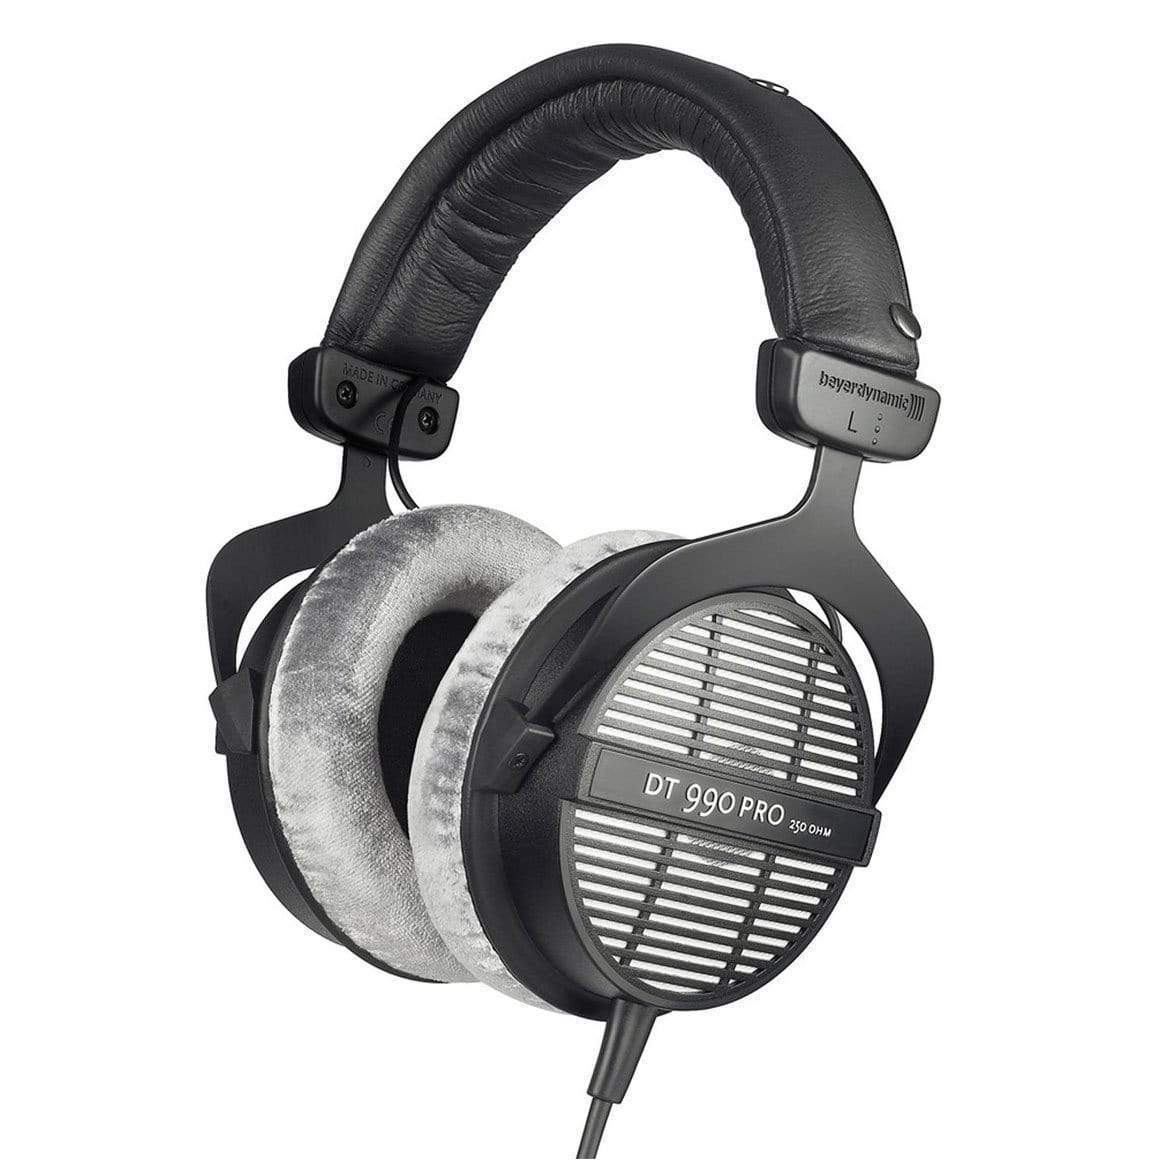 Beyerdynamic - DT 990 Pro vs competitors